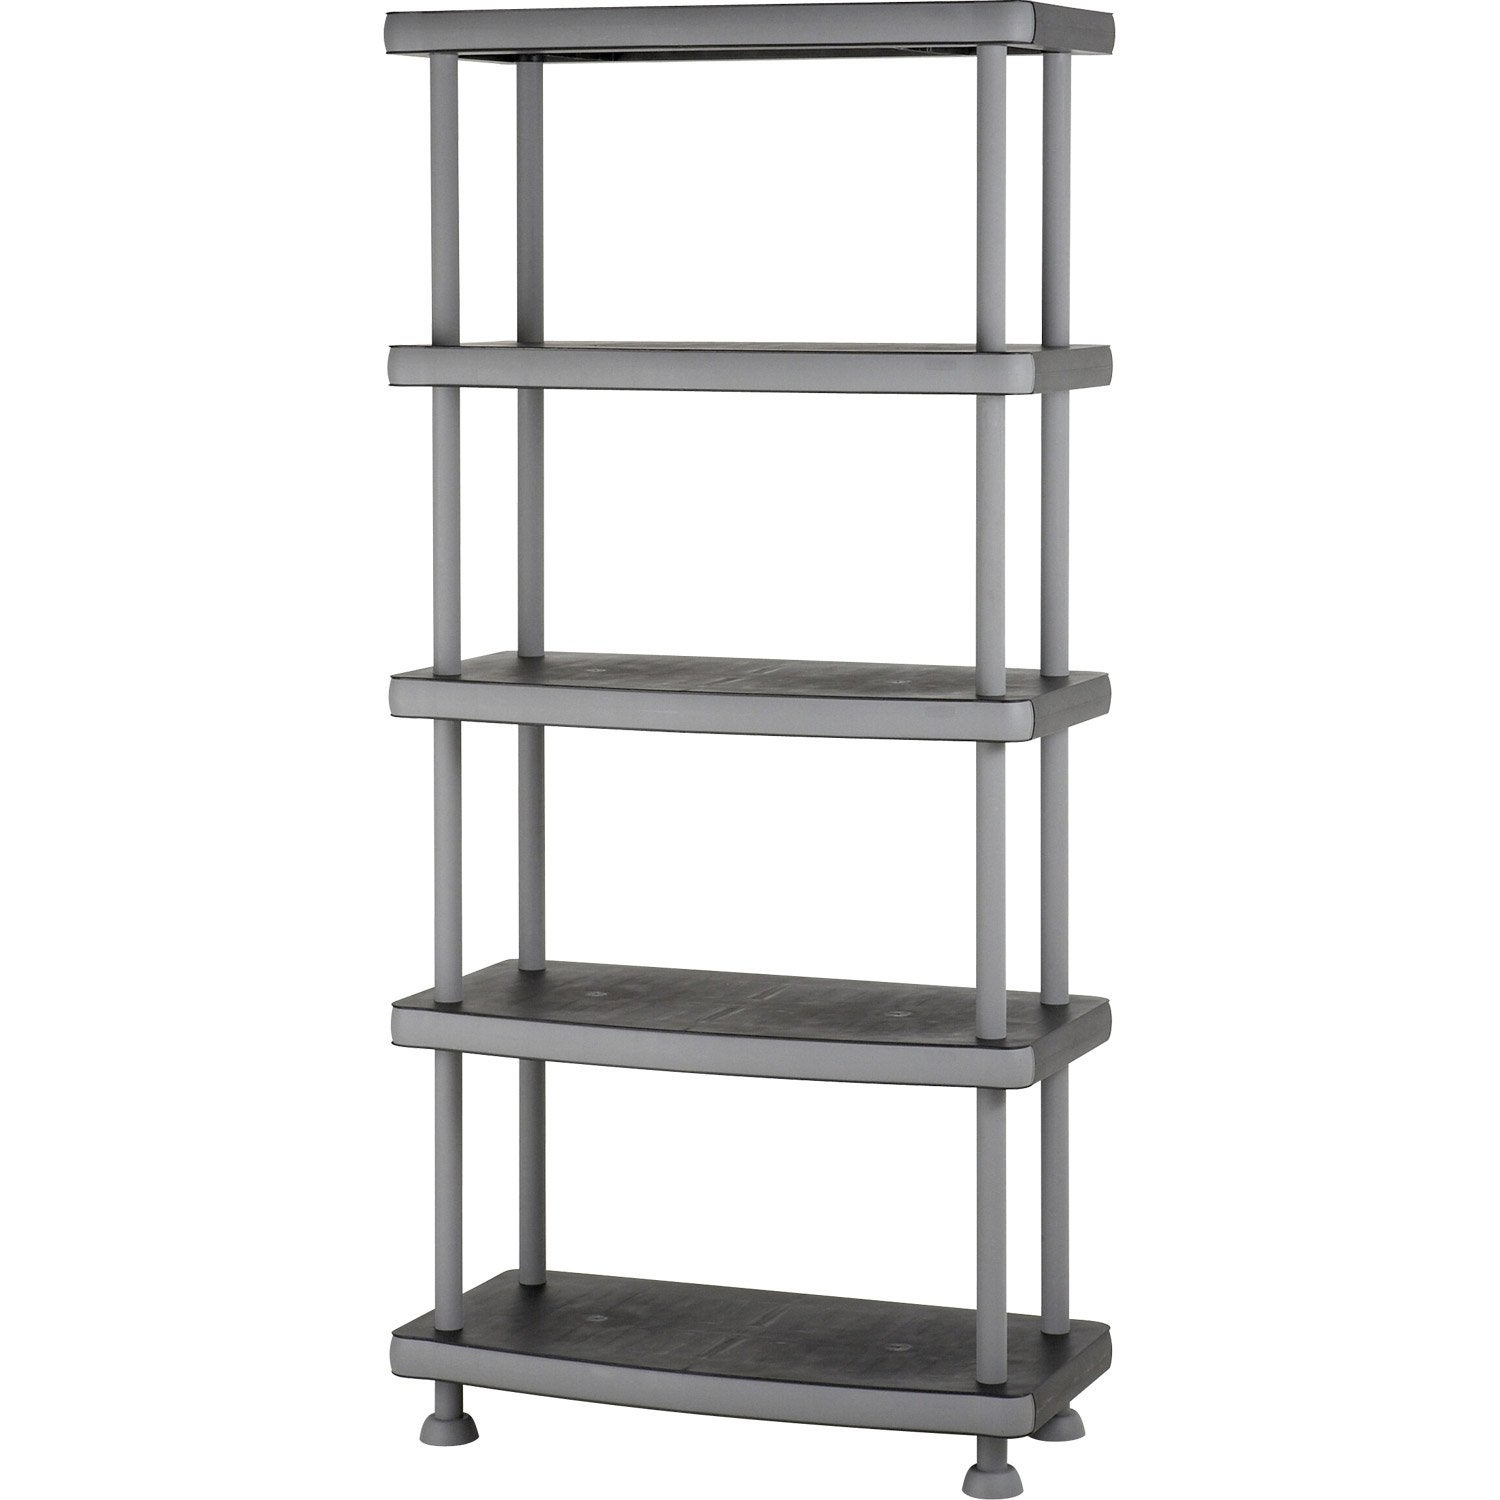 Gallery of etagre rsine tablettes noir lxhxp cm with - Equerre etagere ikea ...